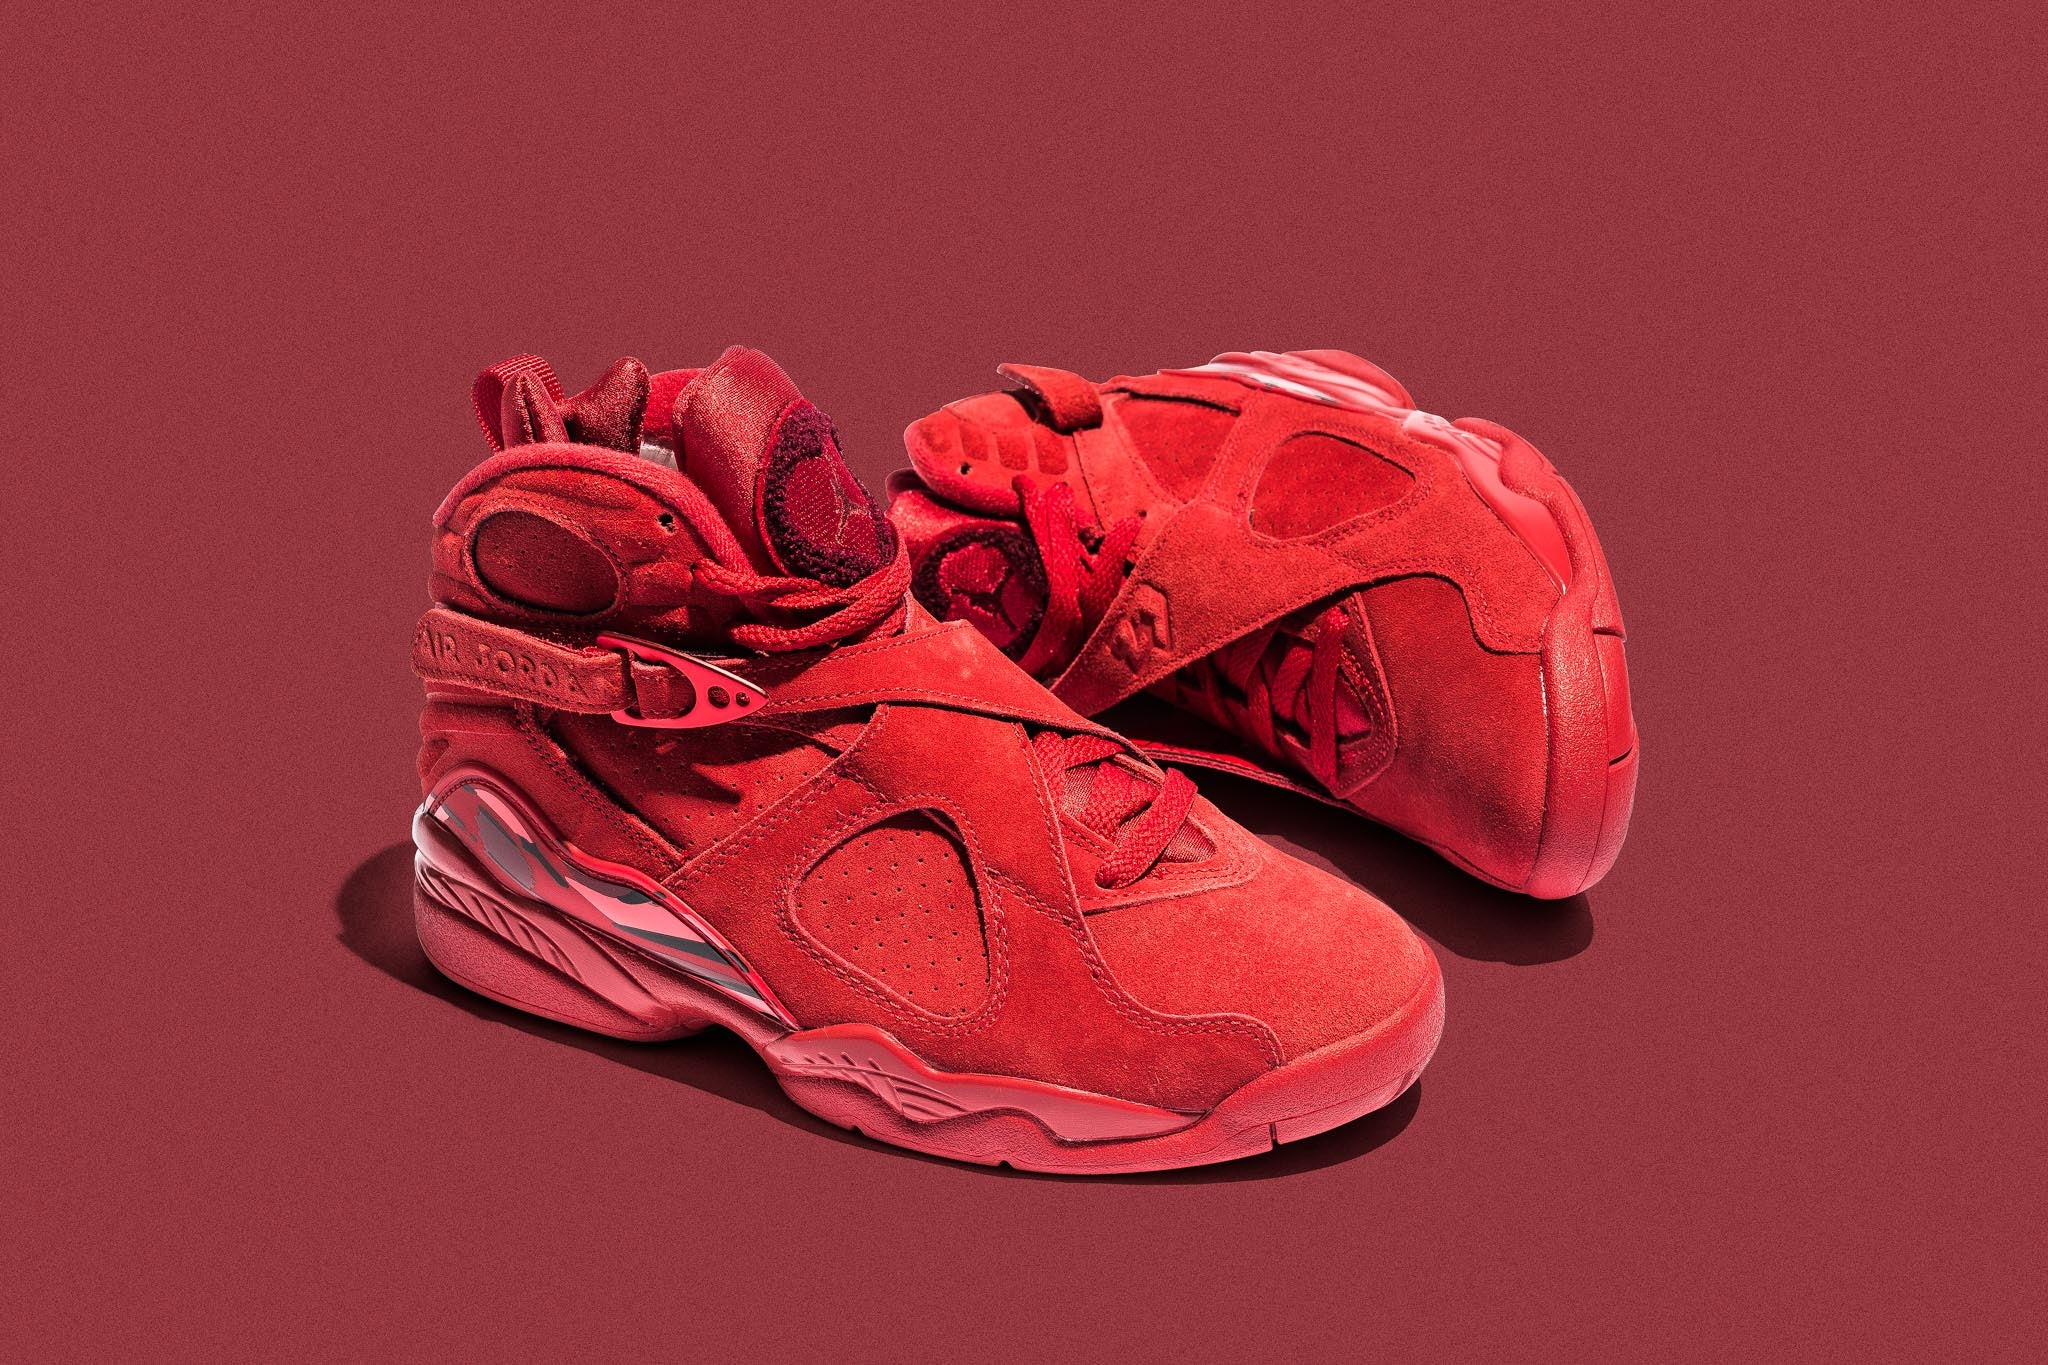 timeless design 7aece 3568f clearance air jordan 8 womens red acc20 83d8c